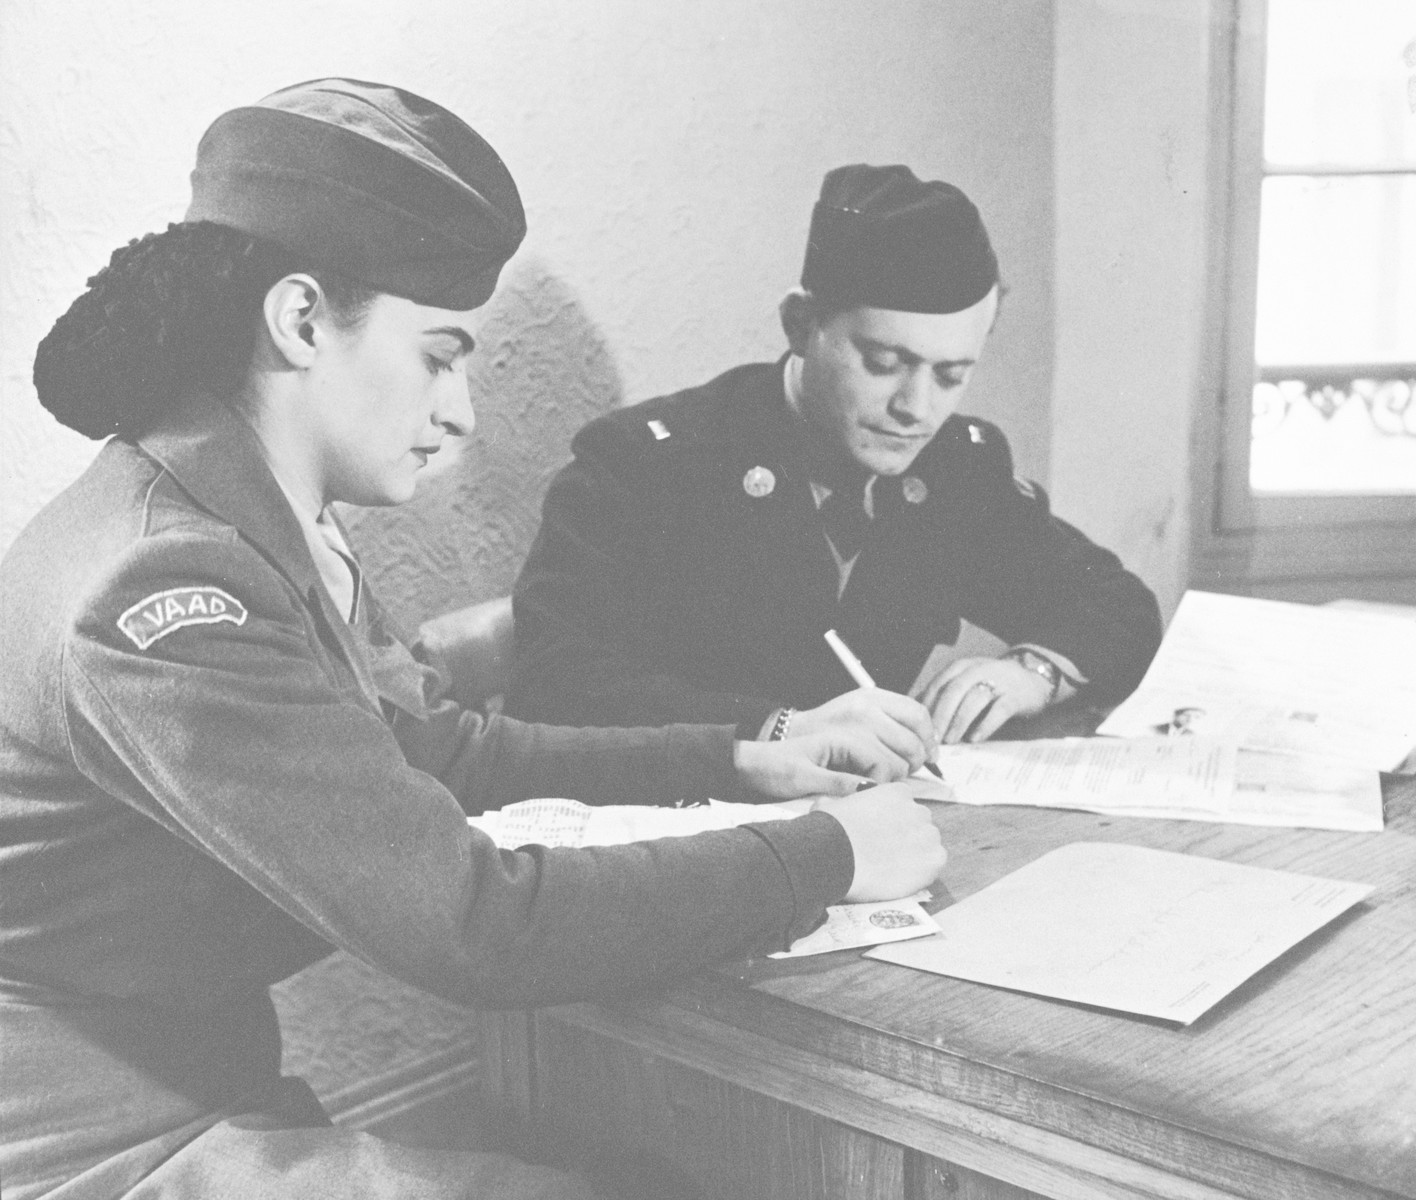 [Rabbi Nathan Baruch] and a female assistant work in the Vaad Hatzalah office in Germany.